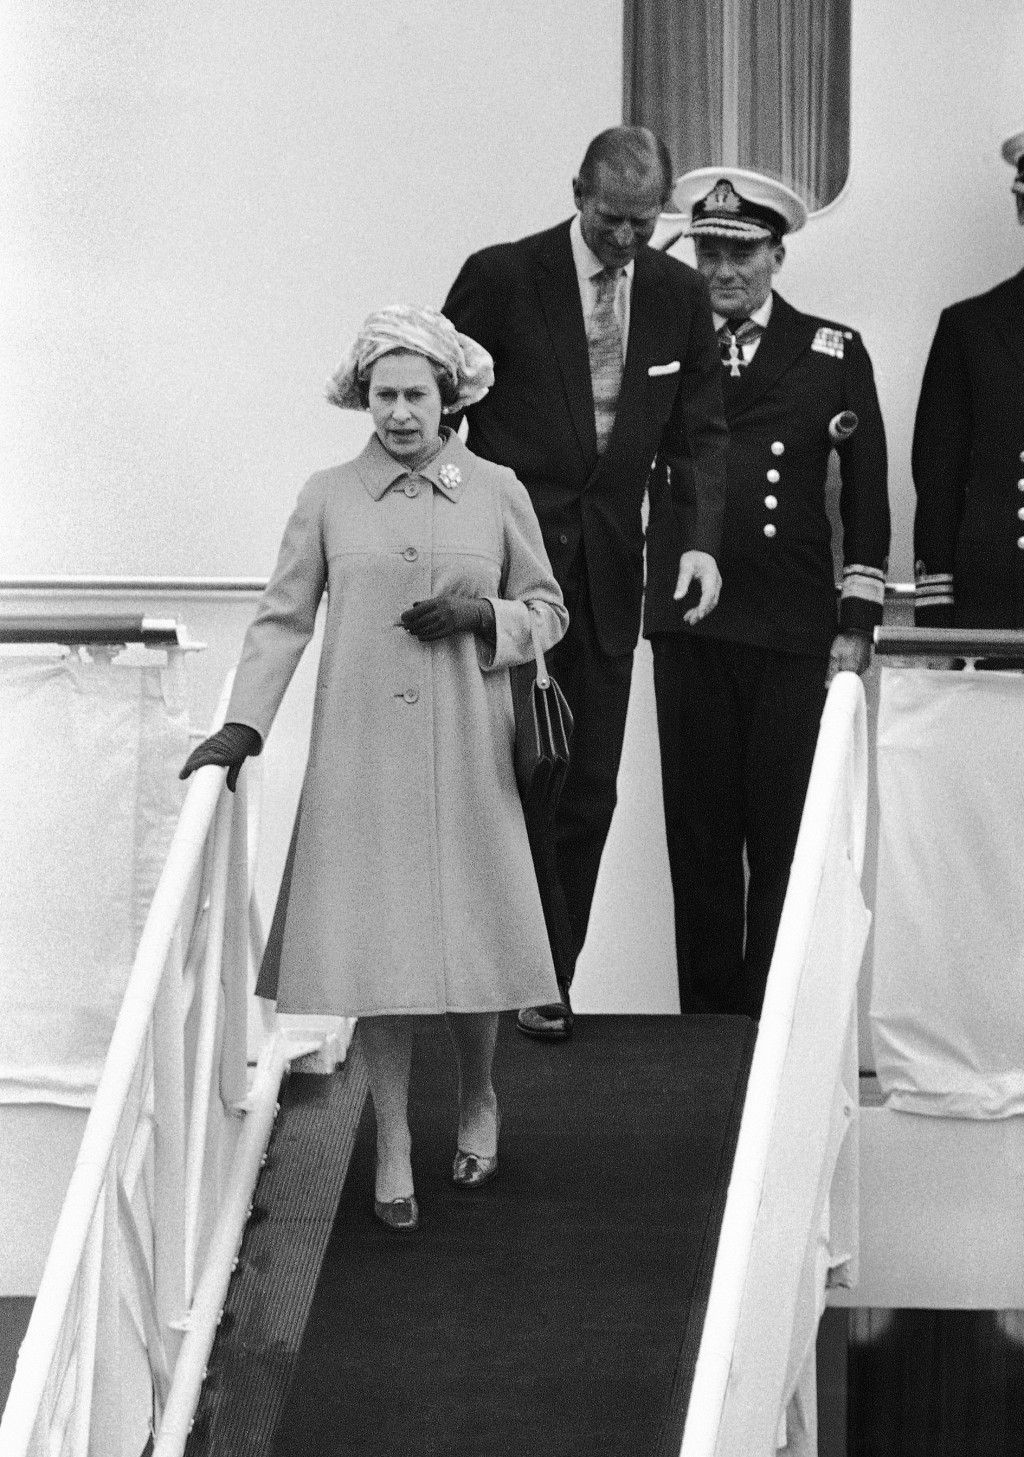 FILE - In this file photo dated Thursday, May 25, 1978, Britain's Queen Elizabeth II and Prince Philip leave the Royal Yacht Britannia for a stopover ...